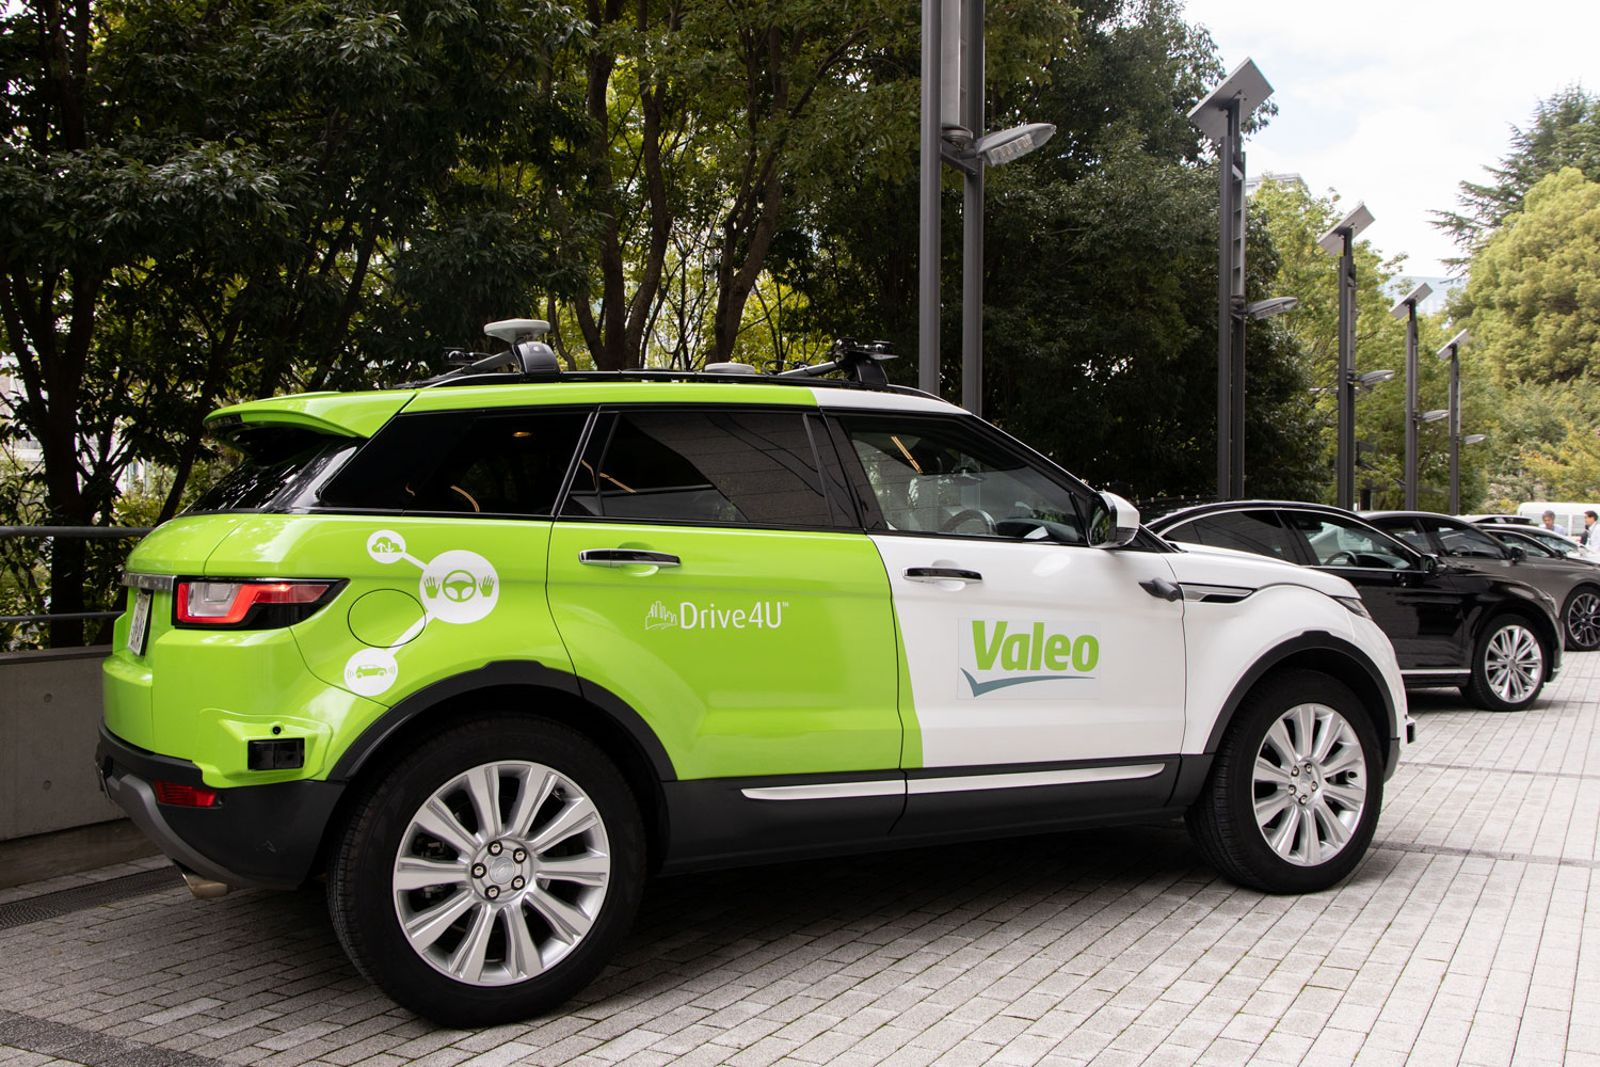 Valeo car in Japan Kohnan